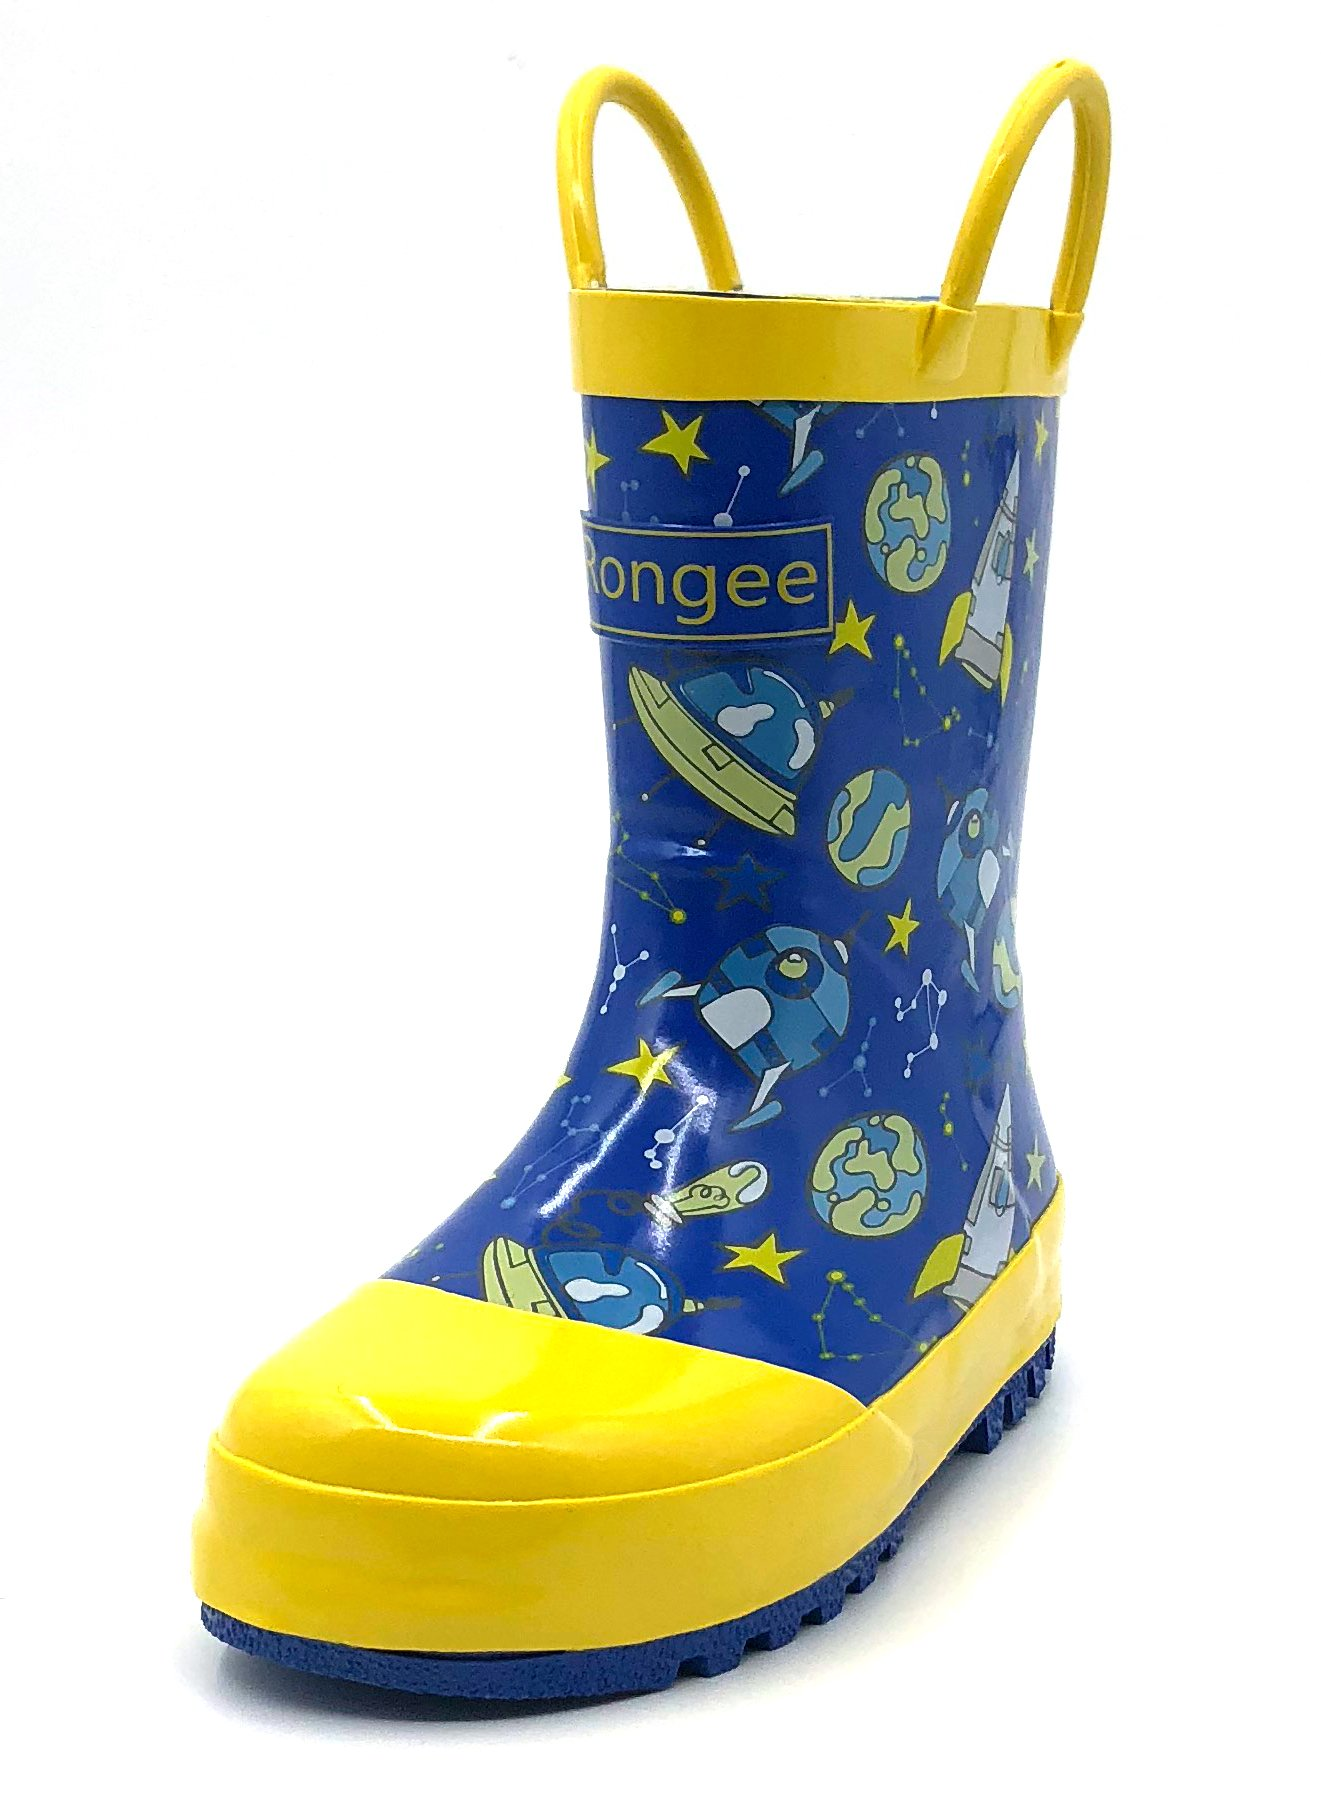 Rongee Rubber Rain Boots for Toddler Little Kids with Cute Space Print and Easy-On Handles and Oxford Bag Packed(10M US Toddler)